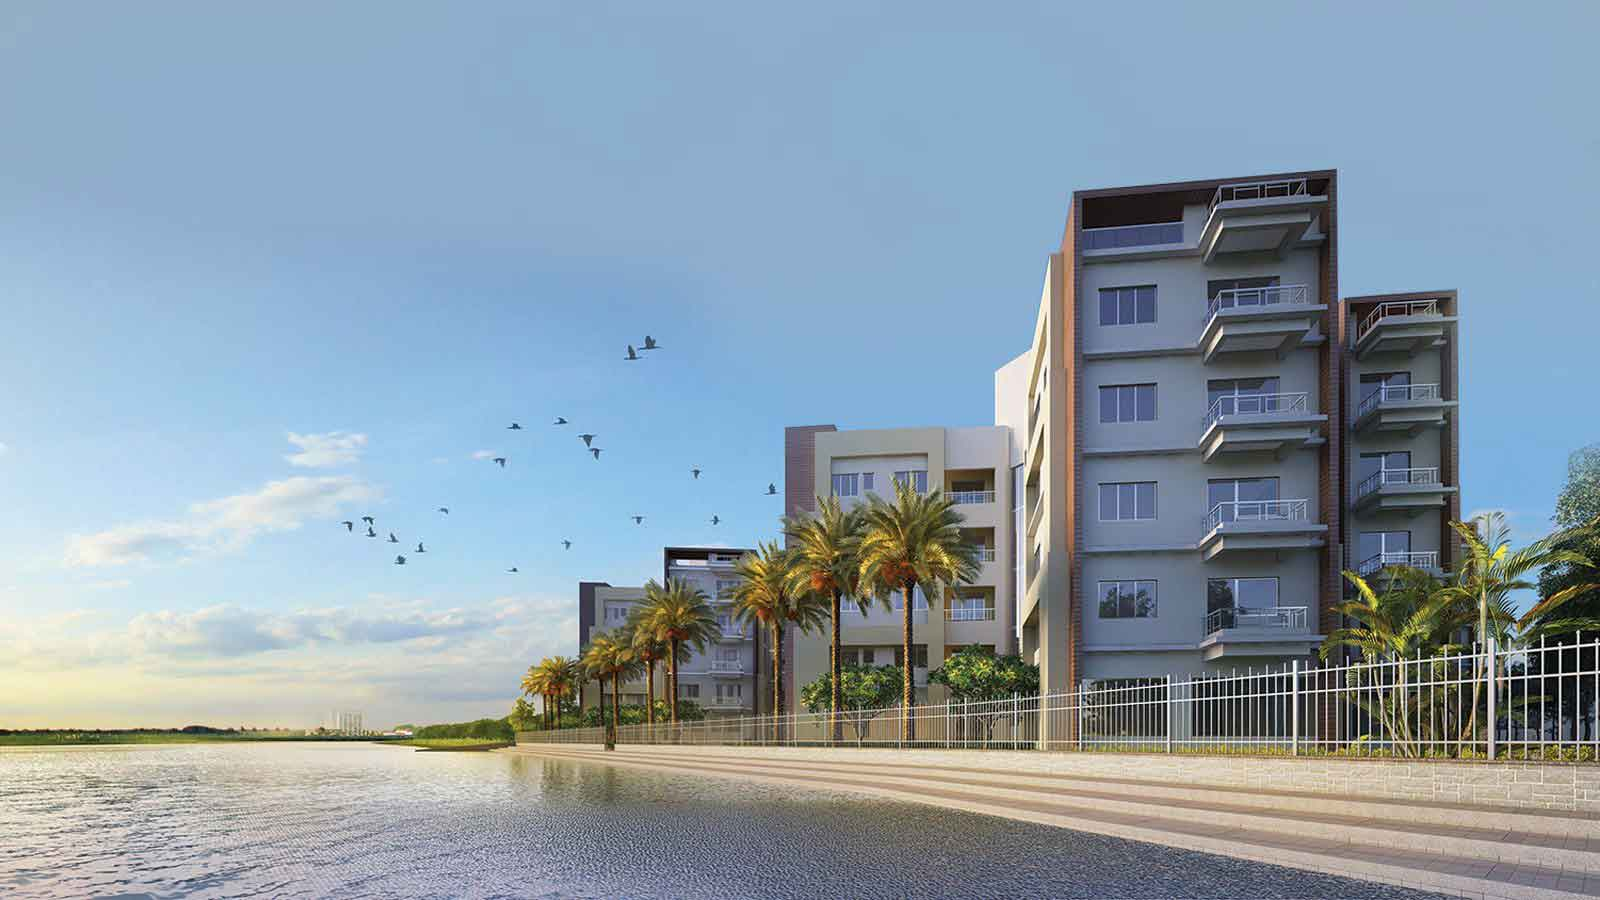 Rameswara Riverview Luxury Flats Barrachpore